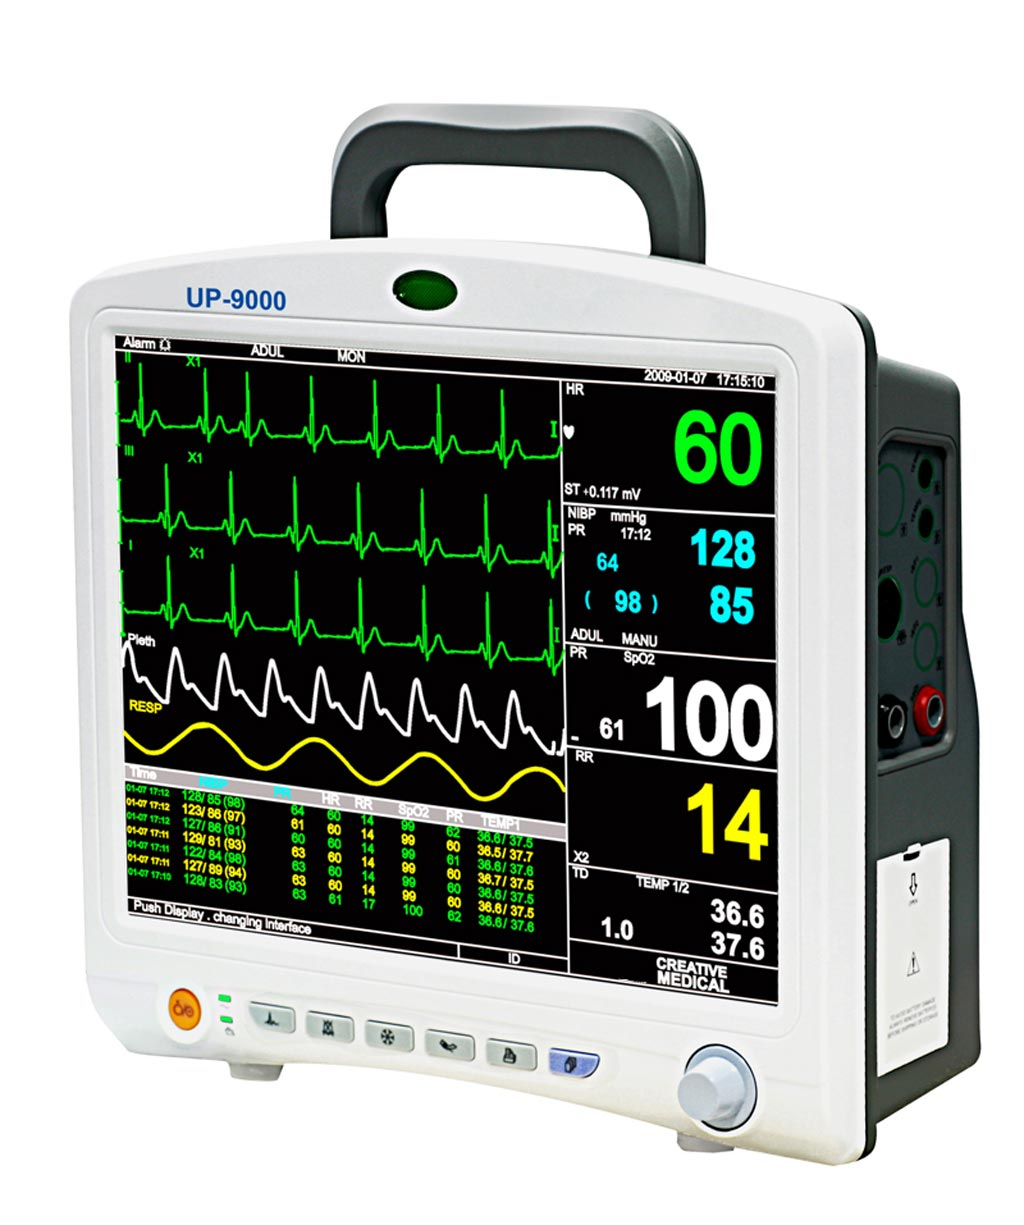 Image: The global multi-parameter patient monitoring market is expected to reach USD 6 billion by the end of 2028 (Photo courtesy of CMI Health).